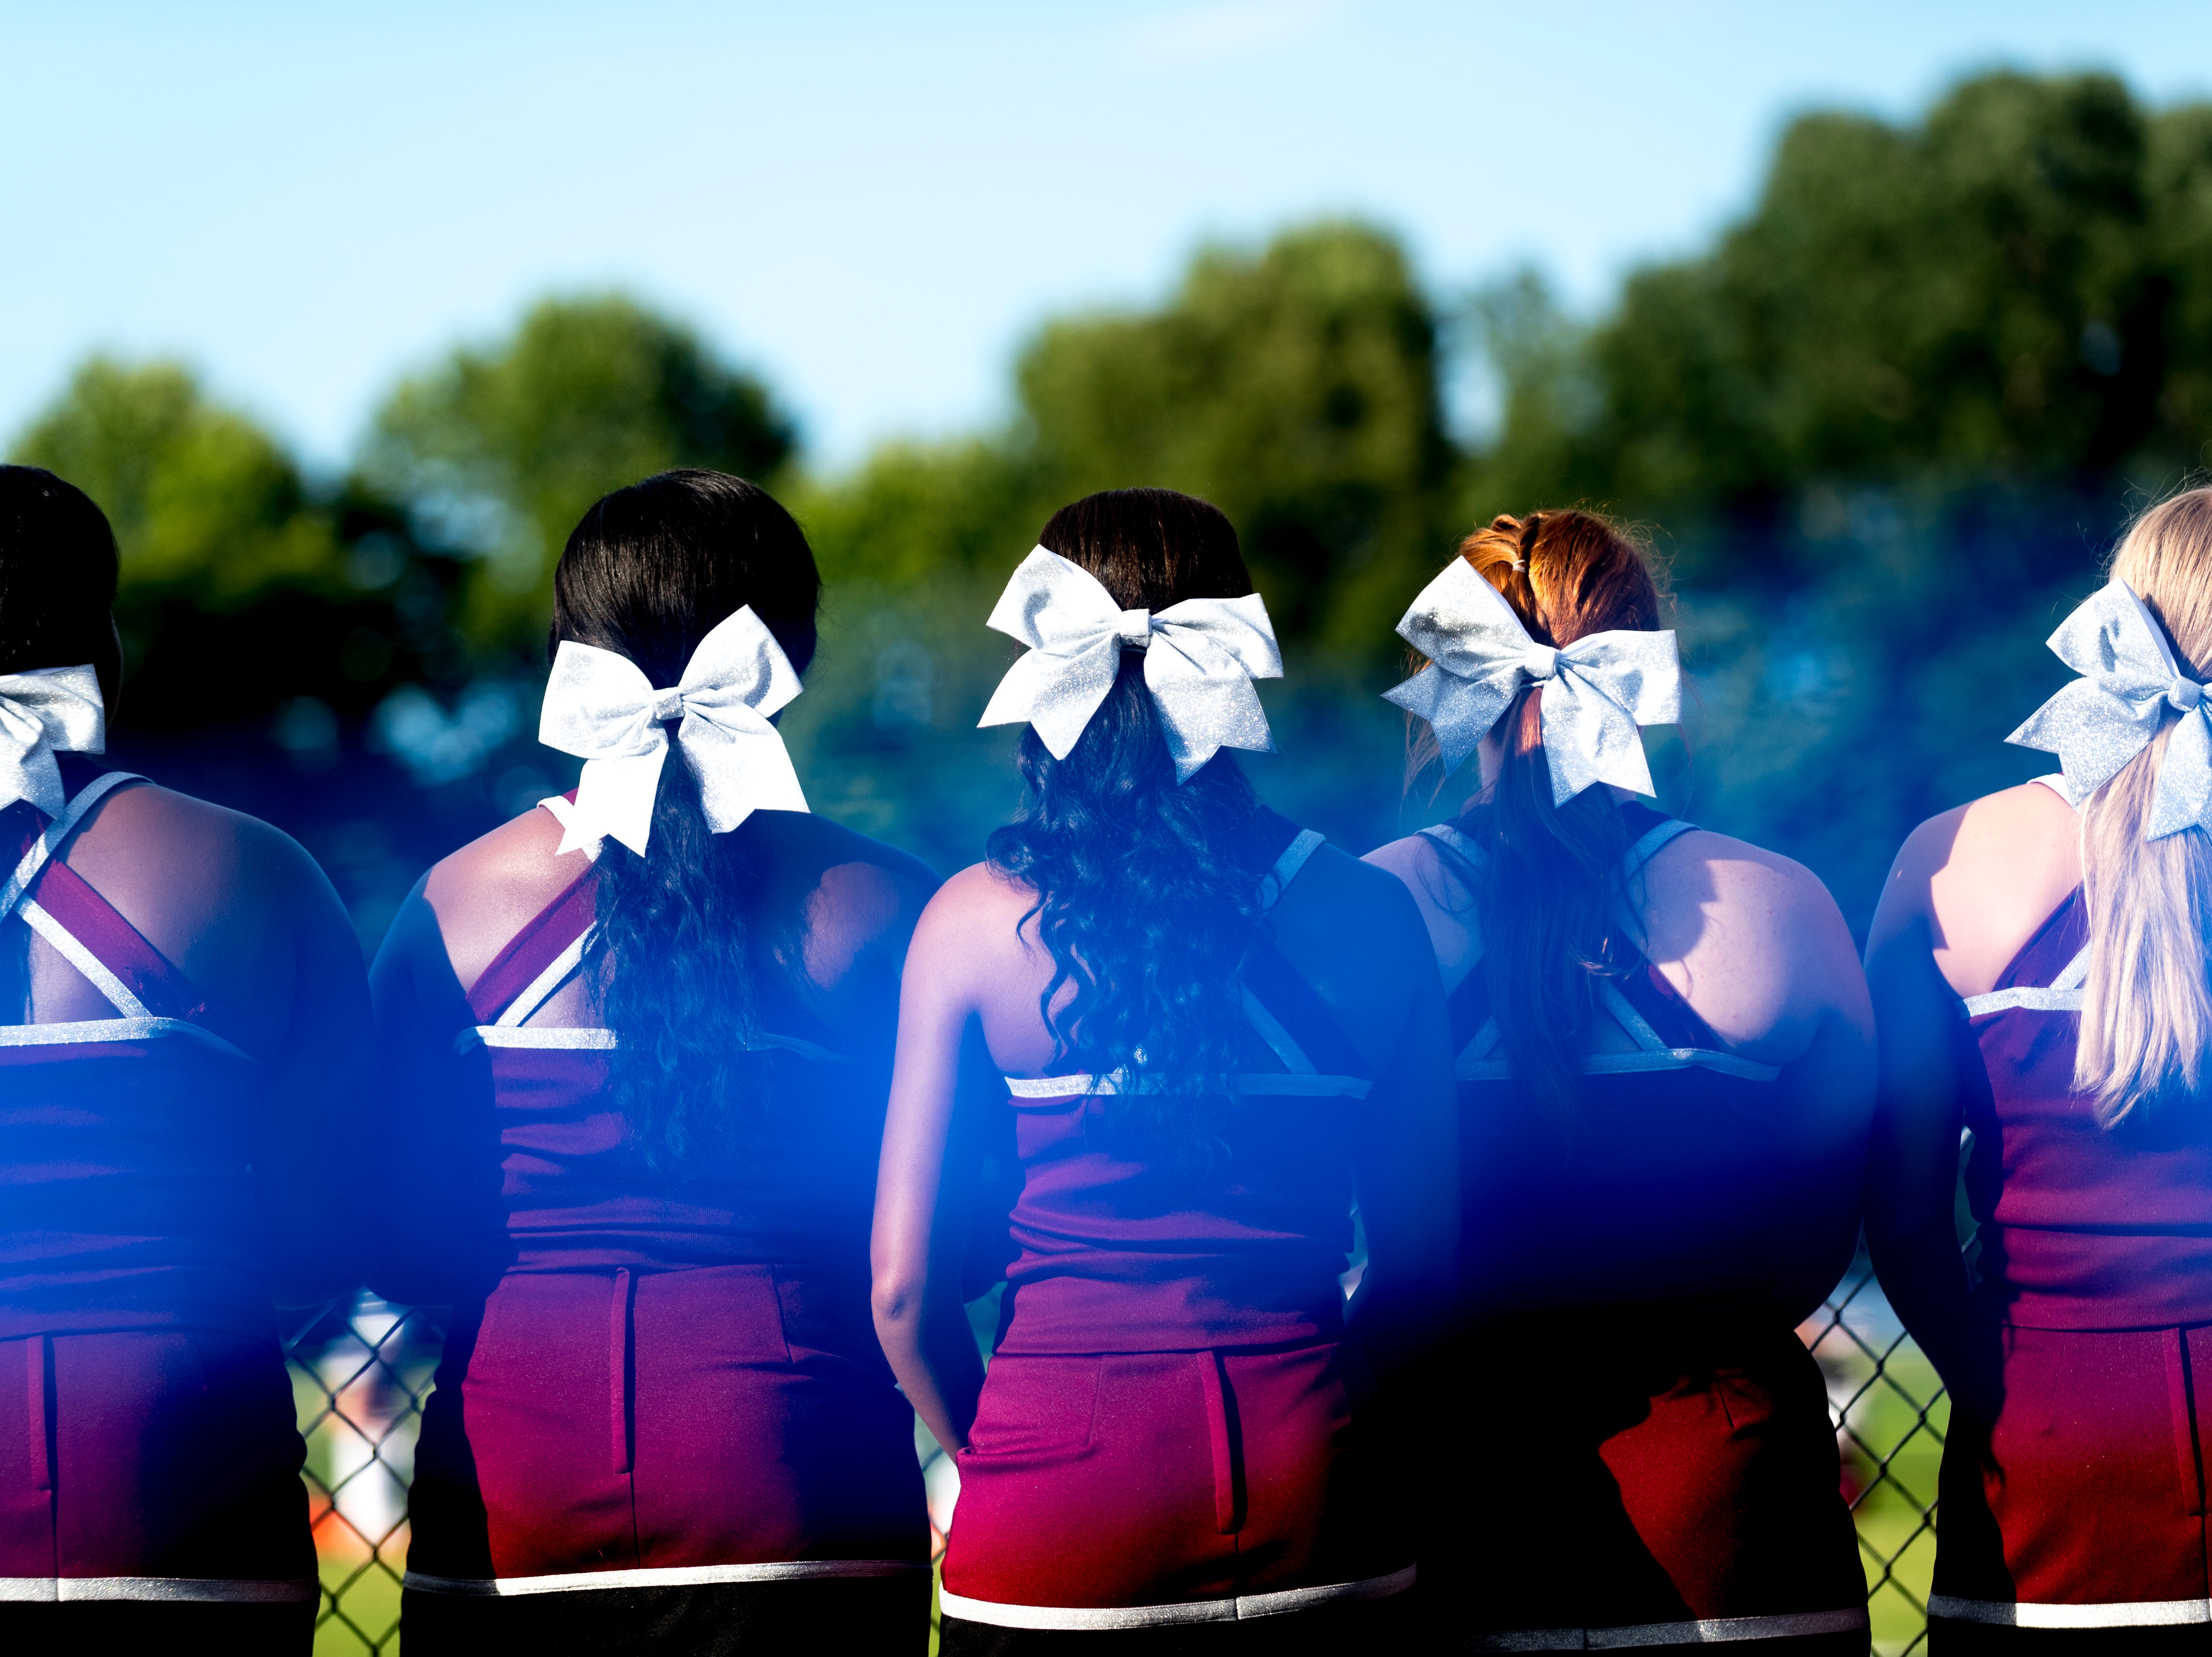 Alcoa cheerleaders watch the action from the sidelines during the Blount County football jamboree at William Blount High School in Maryville, Tennessee on Friday, August 10, 2018.